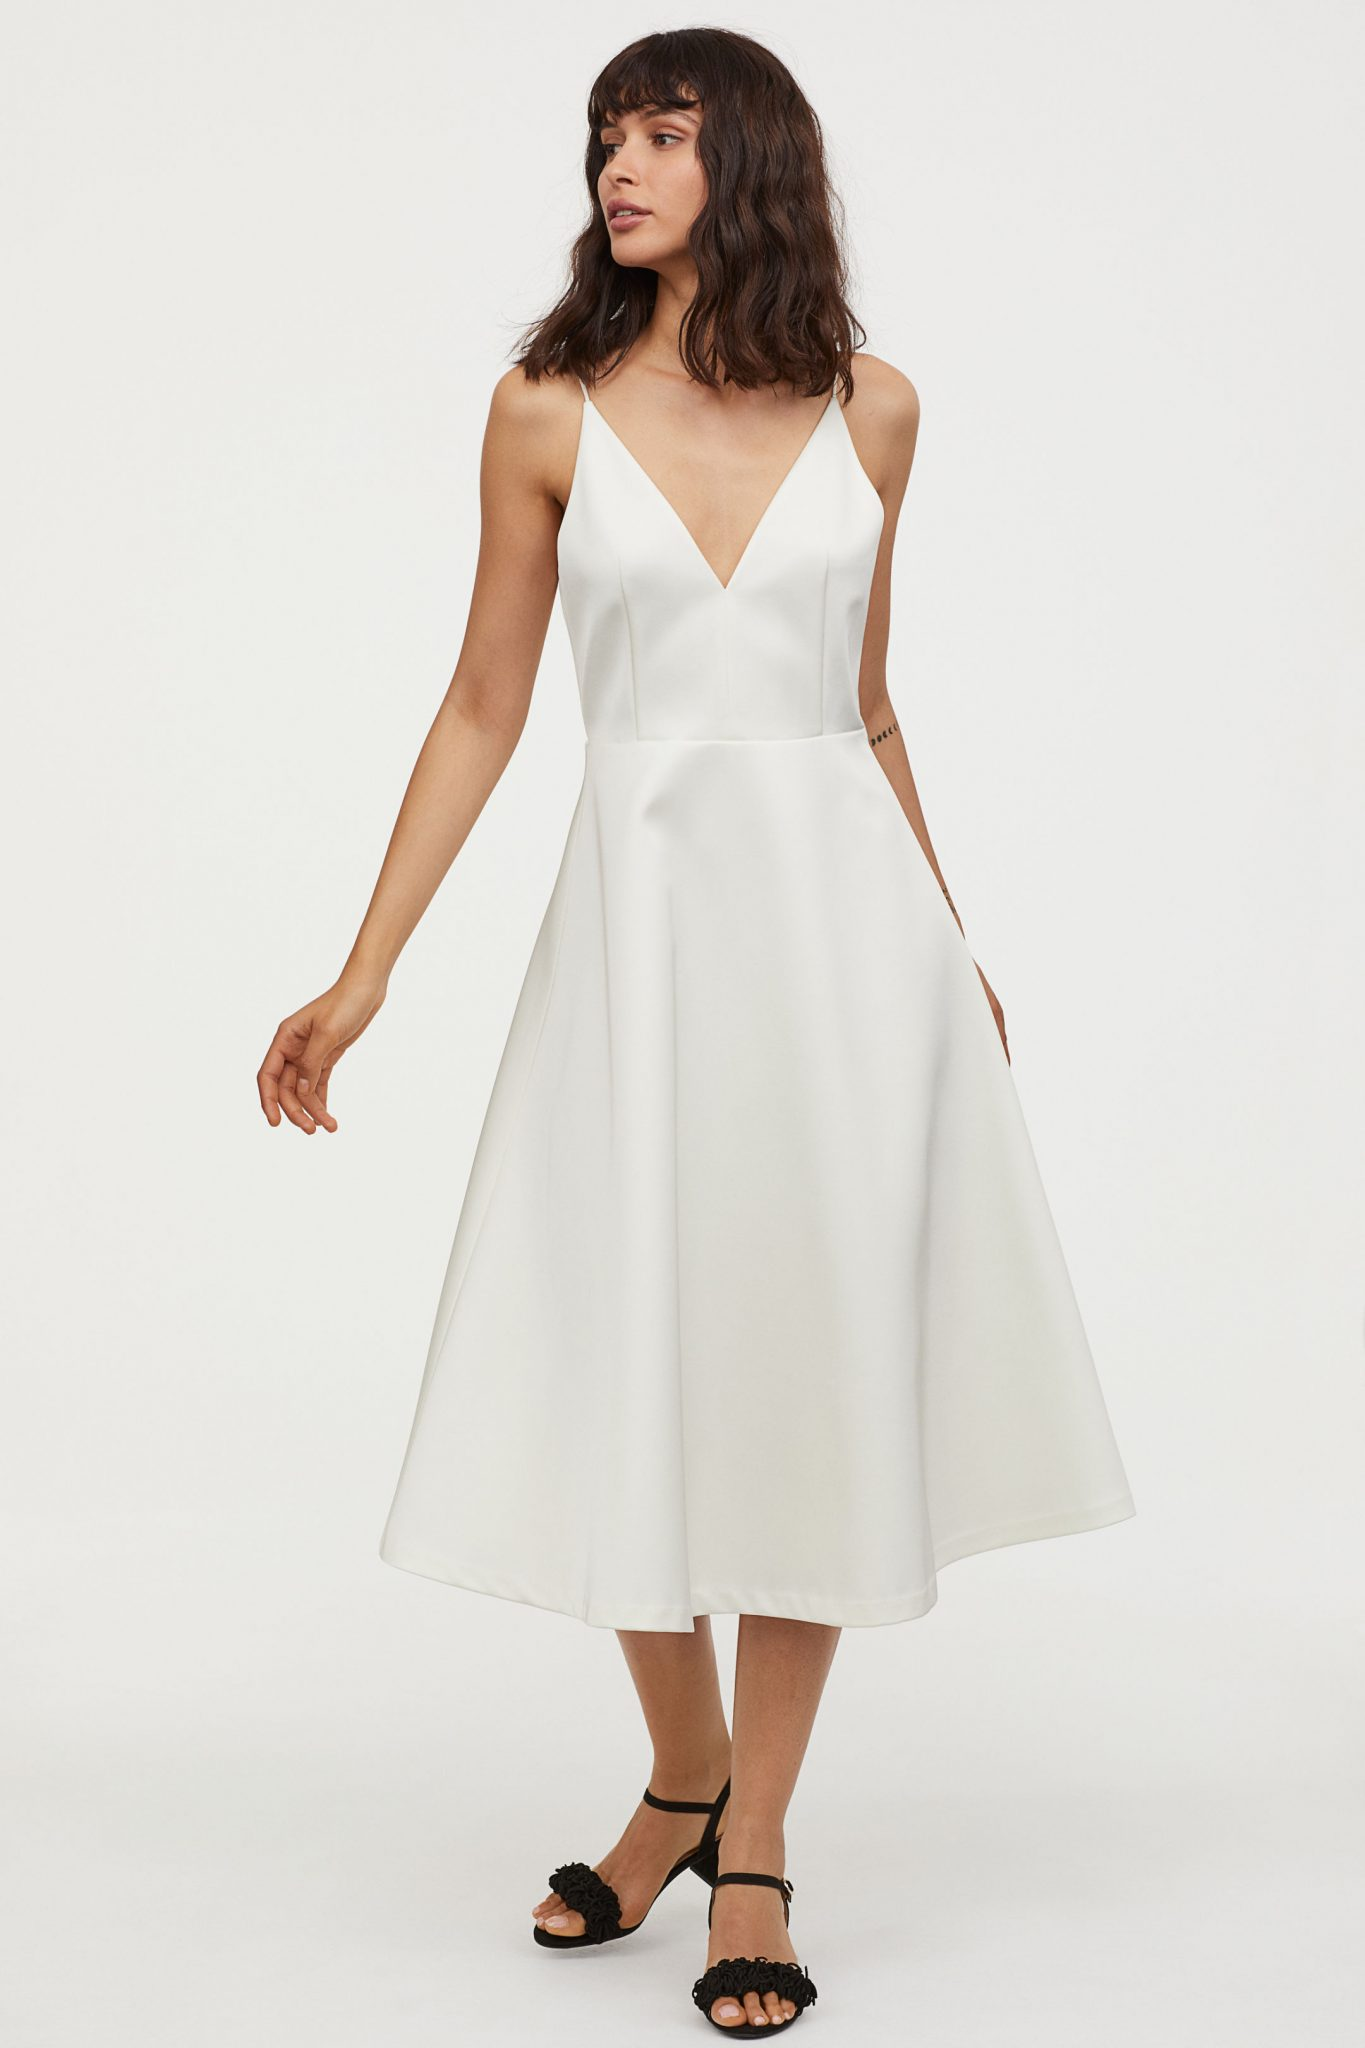 81836dbb58c6 Our favourite dress they have though is the ultra-modern cream one with a  flared skirt.